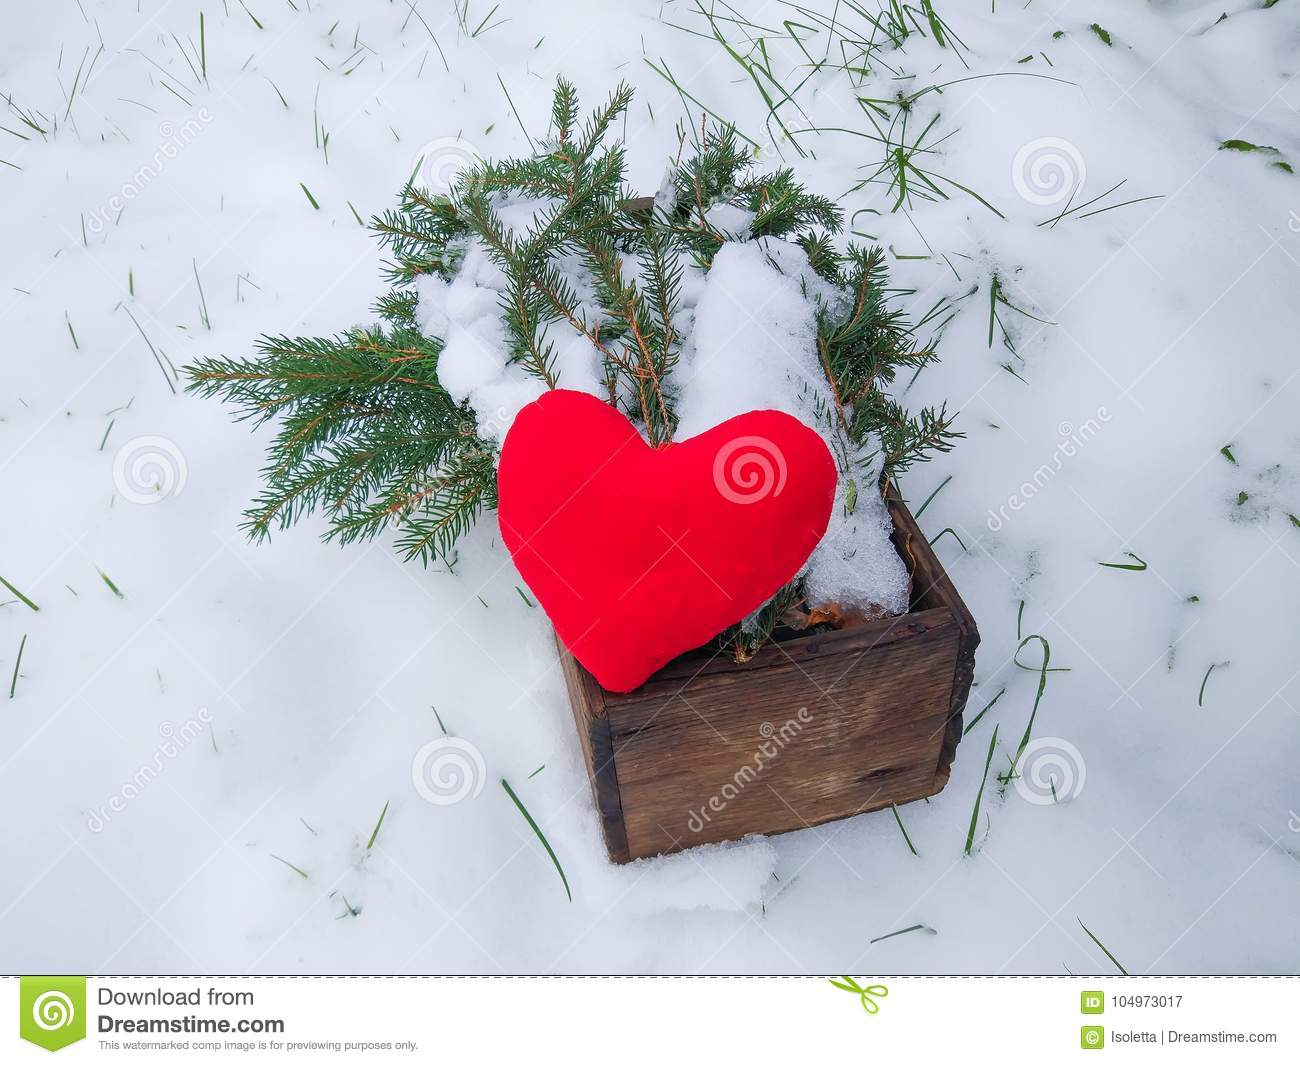 Red plush heart and fir tree branches in wooden box in winter garden.